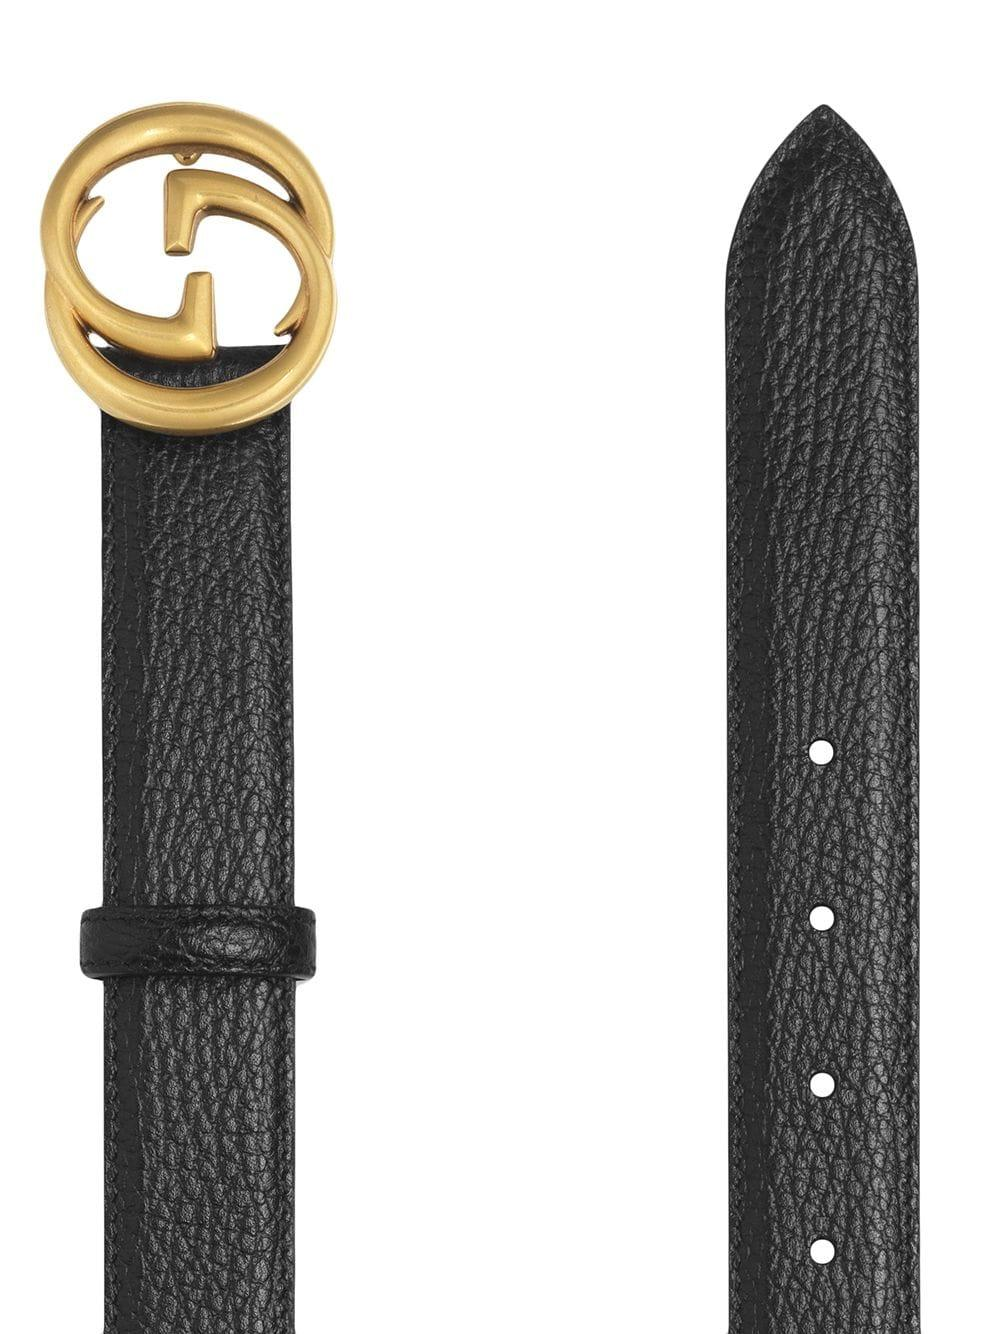 c0e9903738af4 Lyst - Gucci Leather Belt With Interlocking G Buckle in Black for Men -  Save 22%